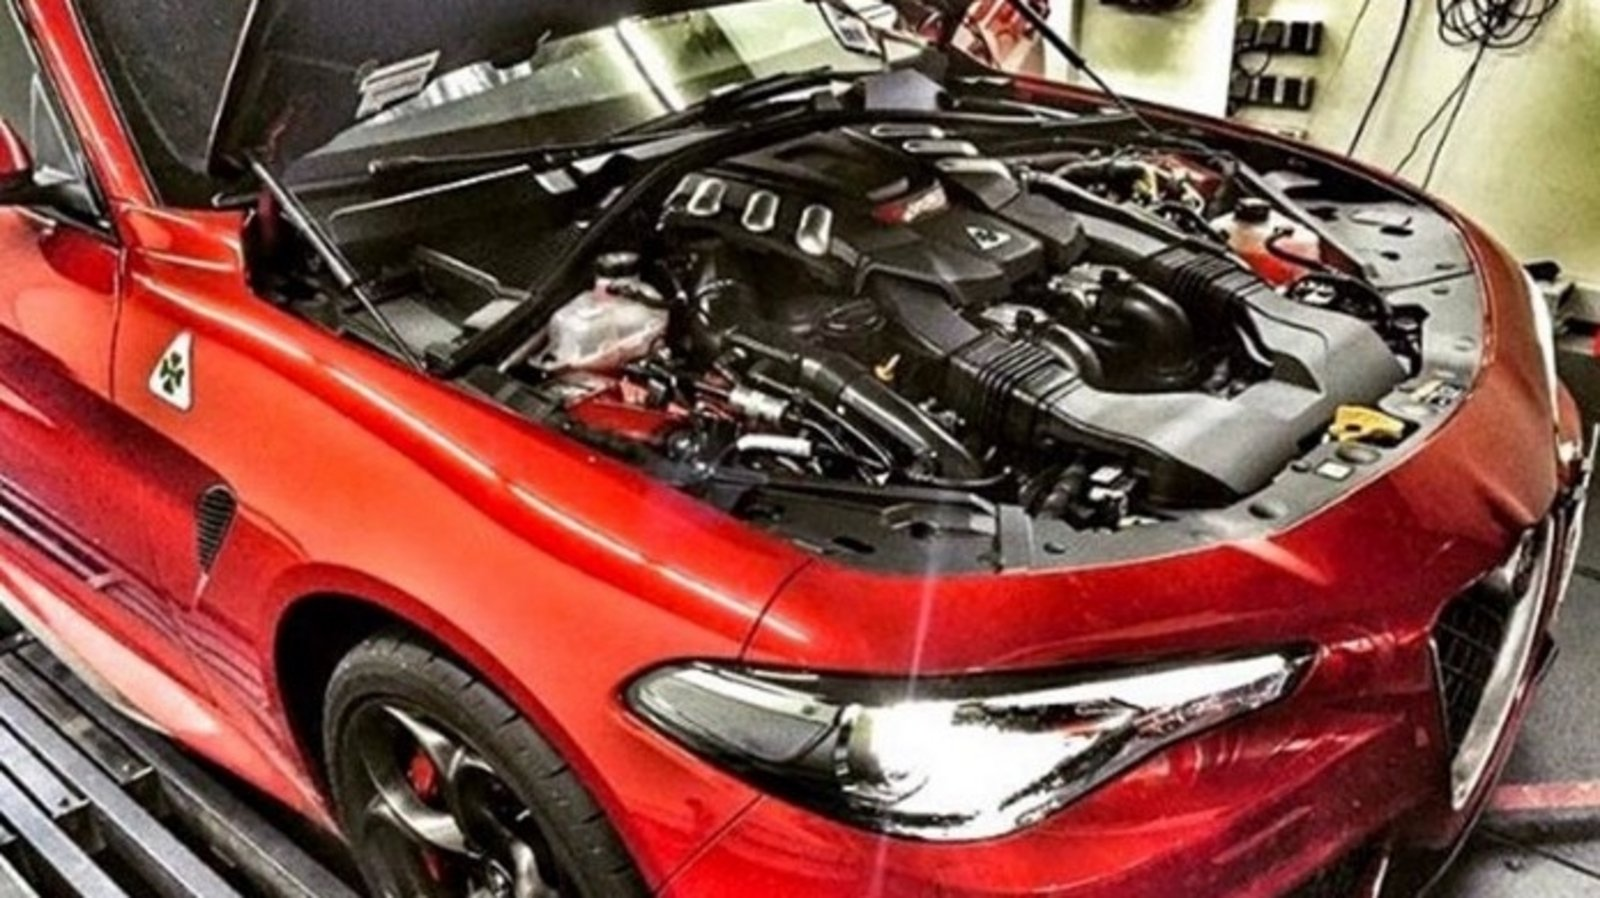 Alfa Romeo Giulia Reviews Specs Prices Photos And Videos Top Speed 4c Engine Diagram A Tuning Company Has Managed To Get More Than 600 Ponies Out Of The Quadrifoglio